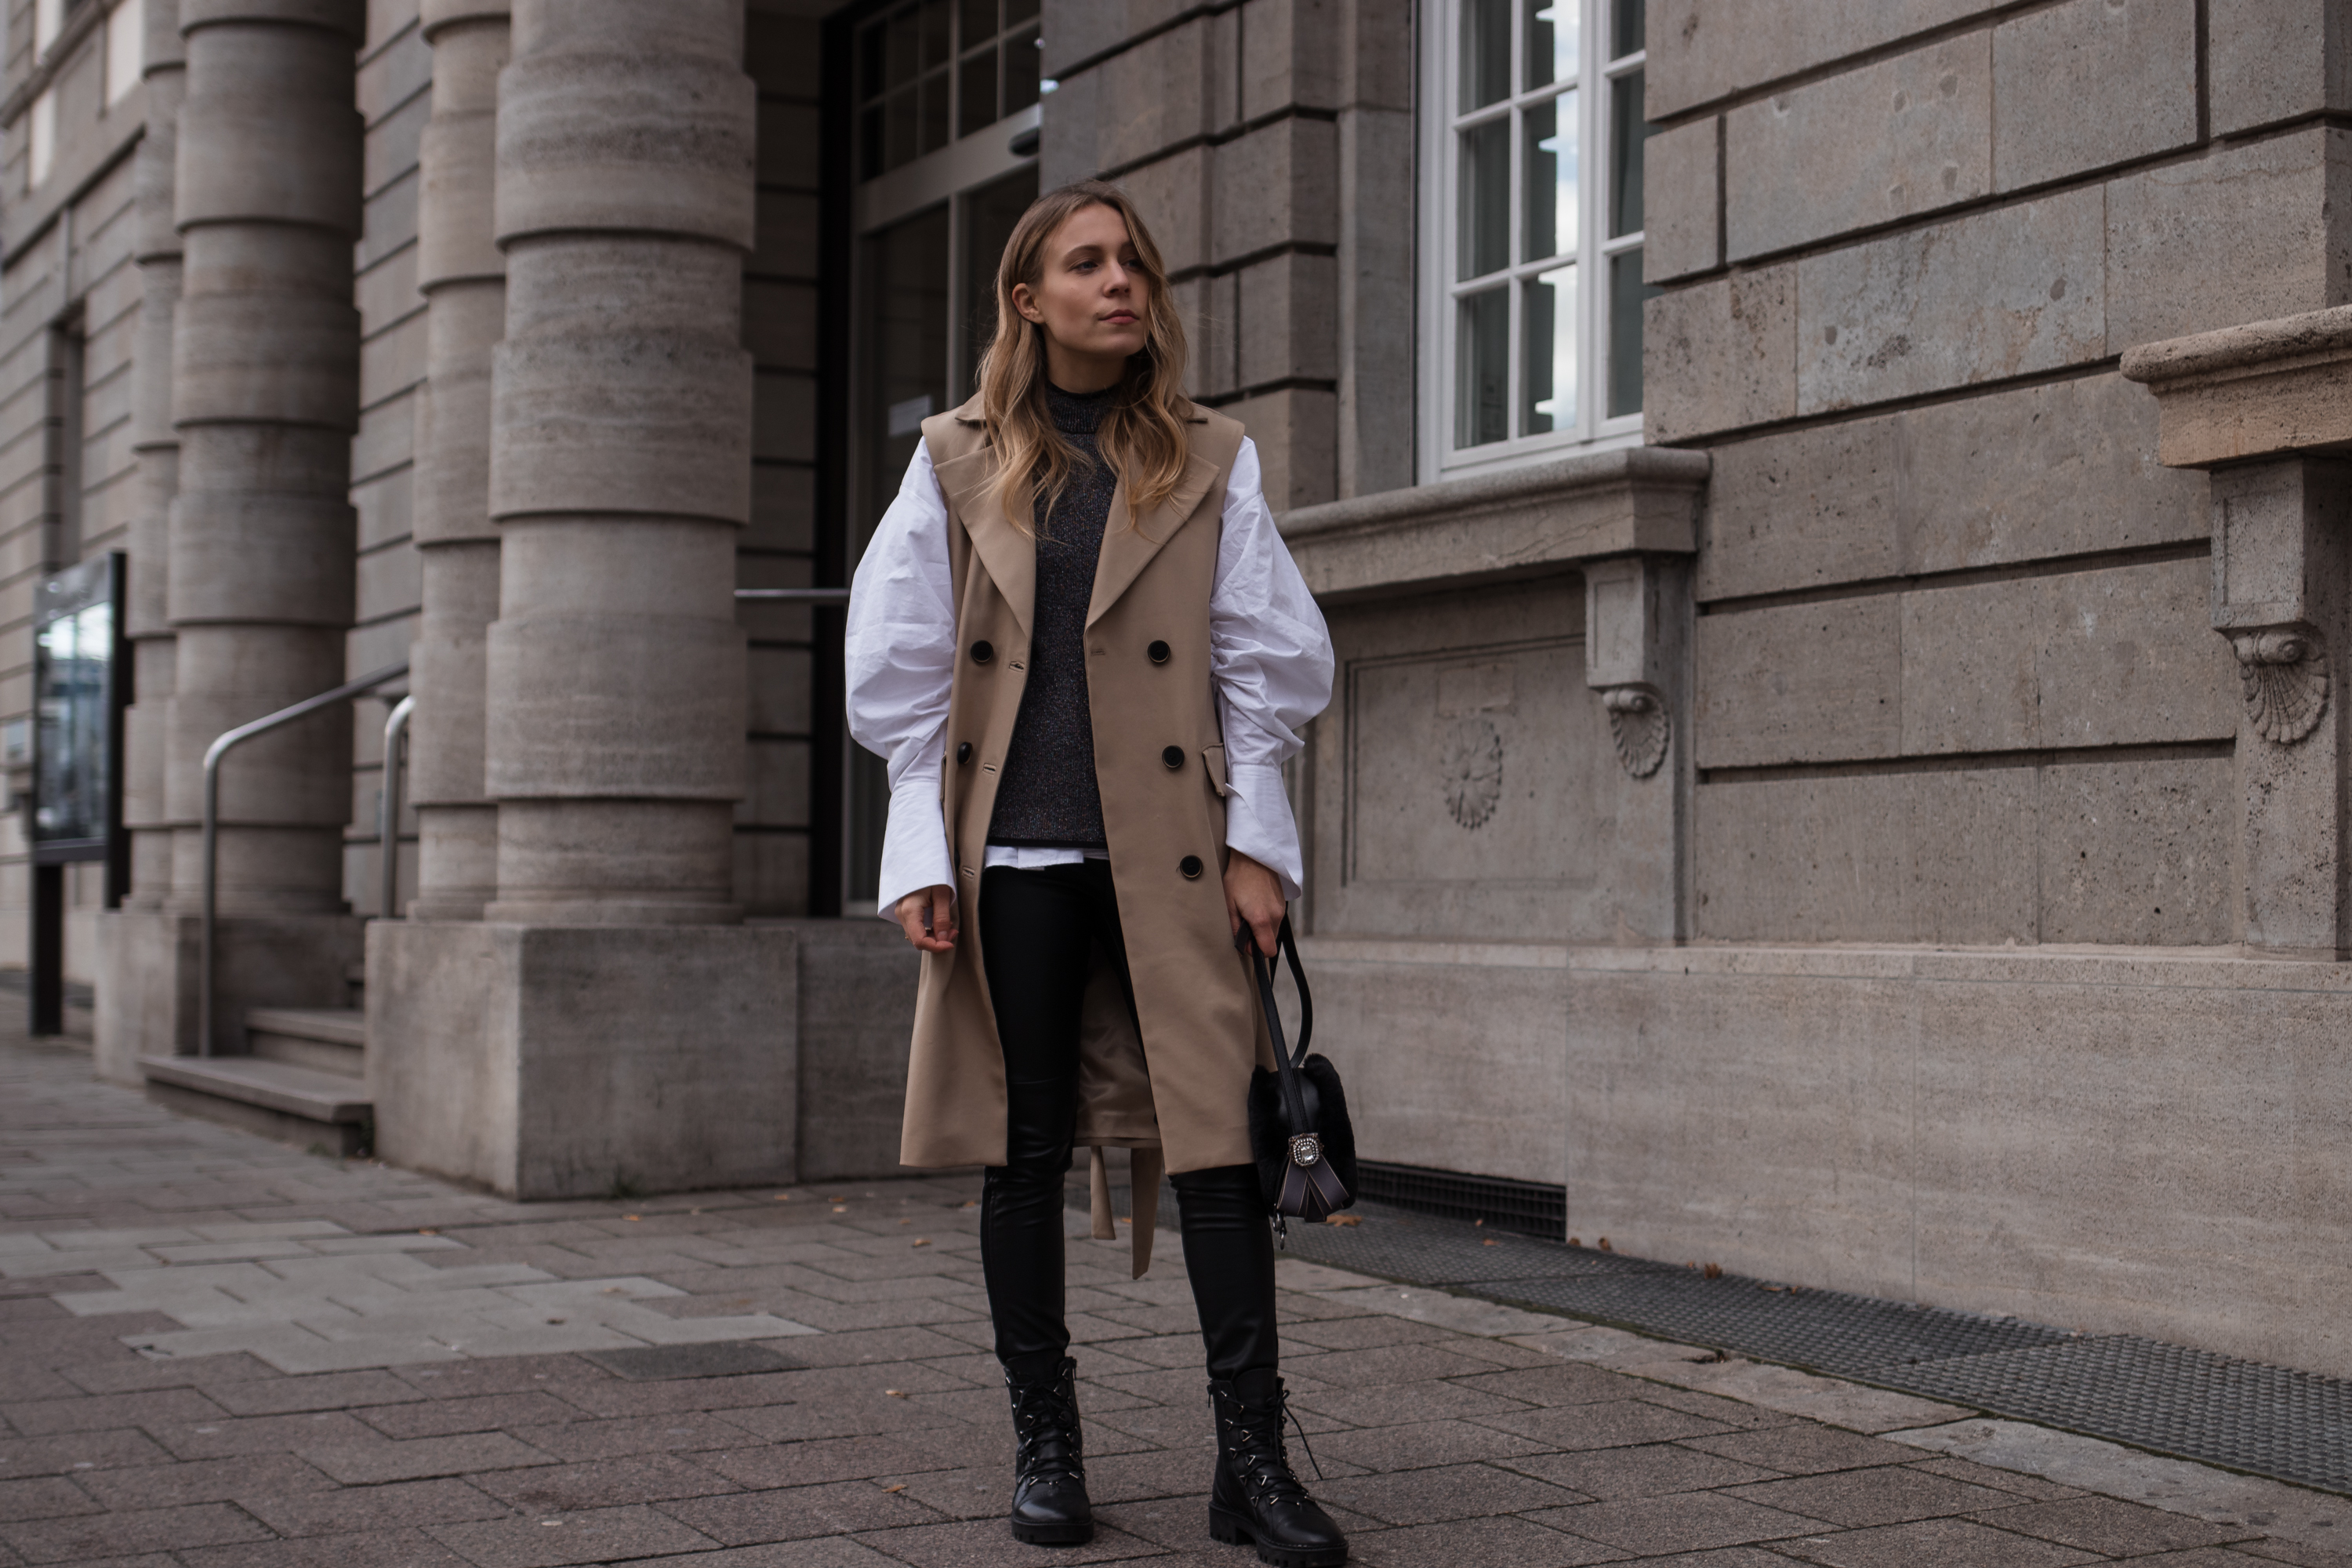 Puffy Sleeved Blouse Trench Vest Casual Chic Christmas Look Leather Pants Boots Puffärmel Modeblog Heidelberg Sariety Fashionblogger_8